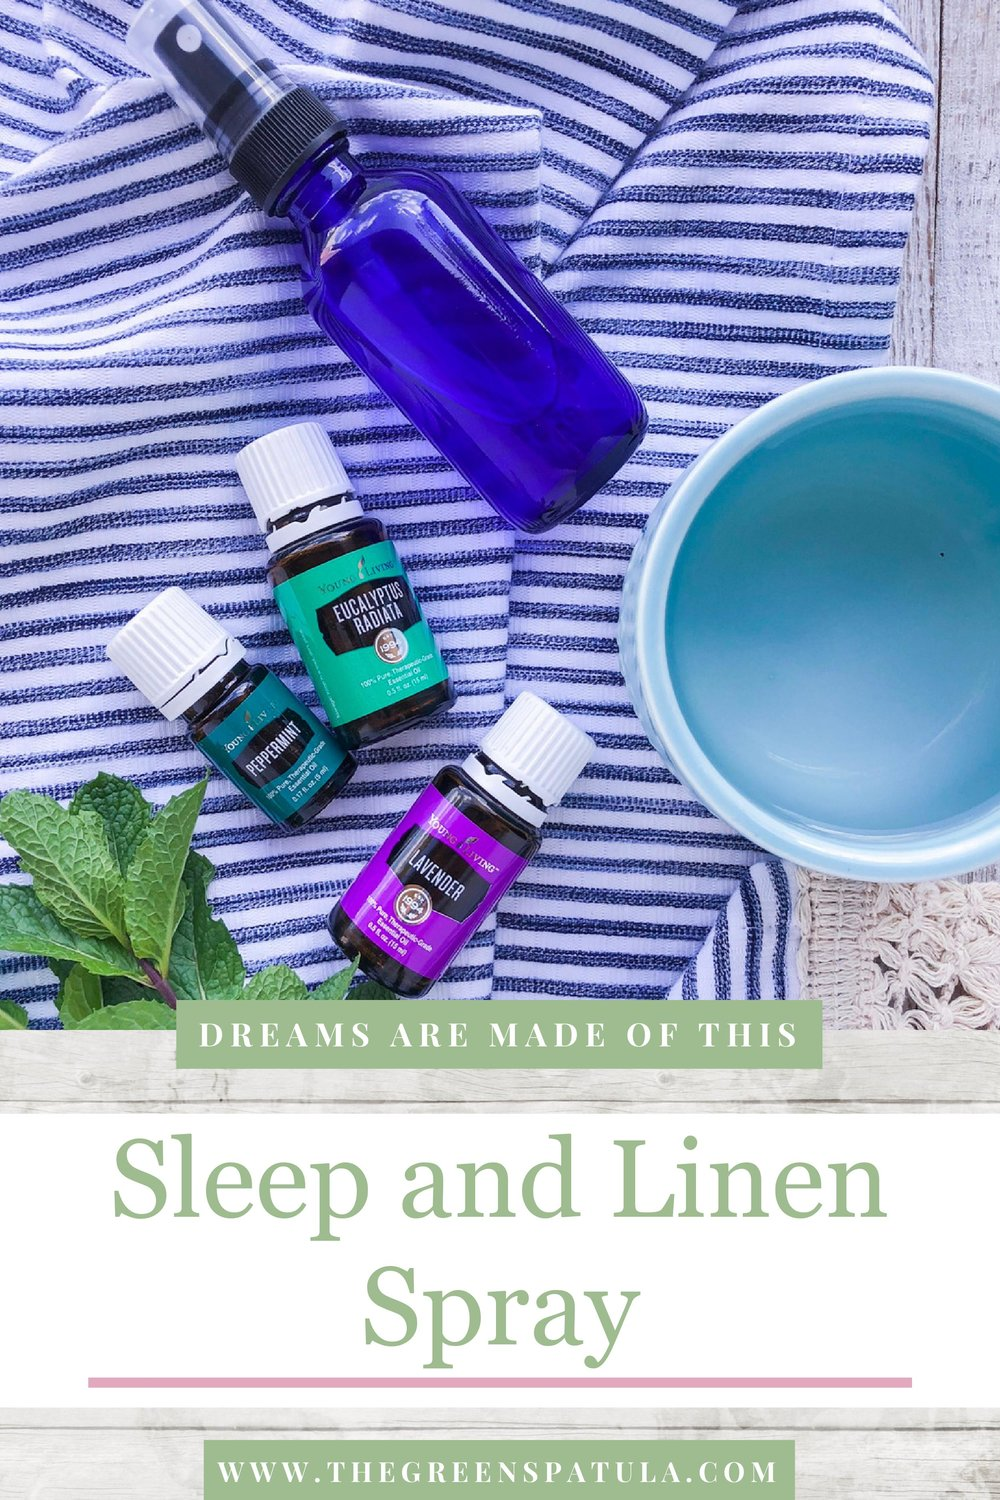 Looking for tips to falling asleep? Calmly sooth your way to sleep with these essential oils to help overcome stress and restlessness. Wondering how to sleep better and deeper, use this spray! #essentialoils#sleepingbetter #sleeptips #betternightssleep #youngliving #yl